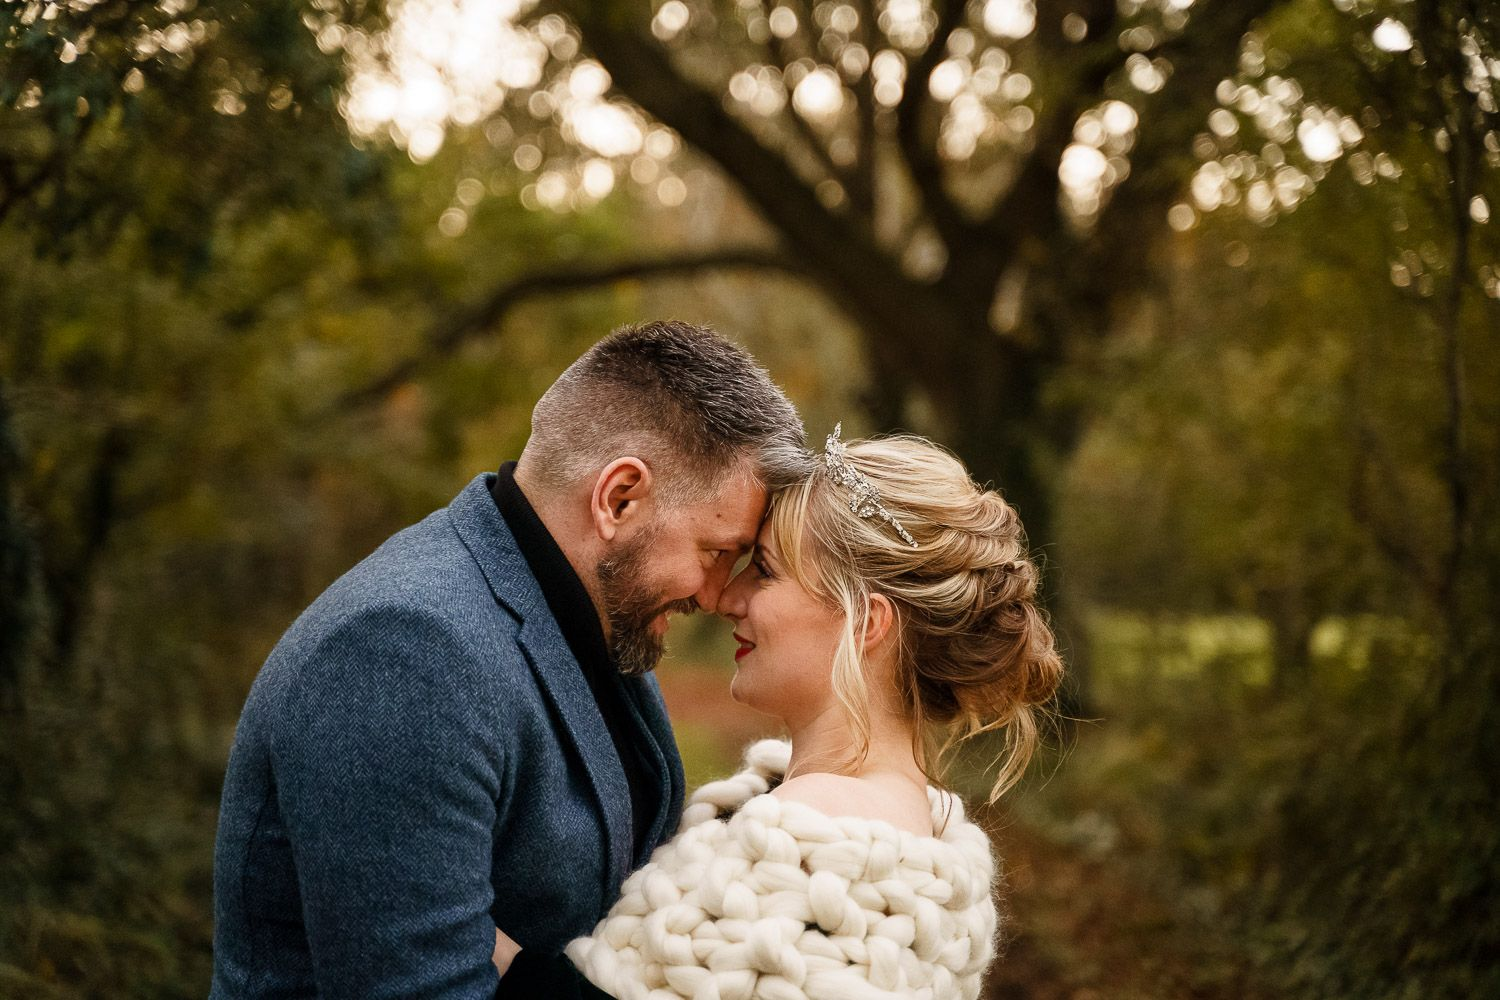 A newly wed couple embrace during golden hour at their winter wedding.